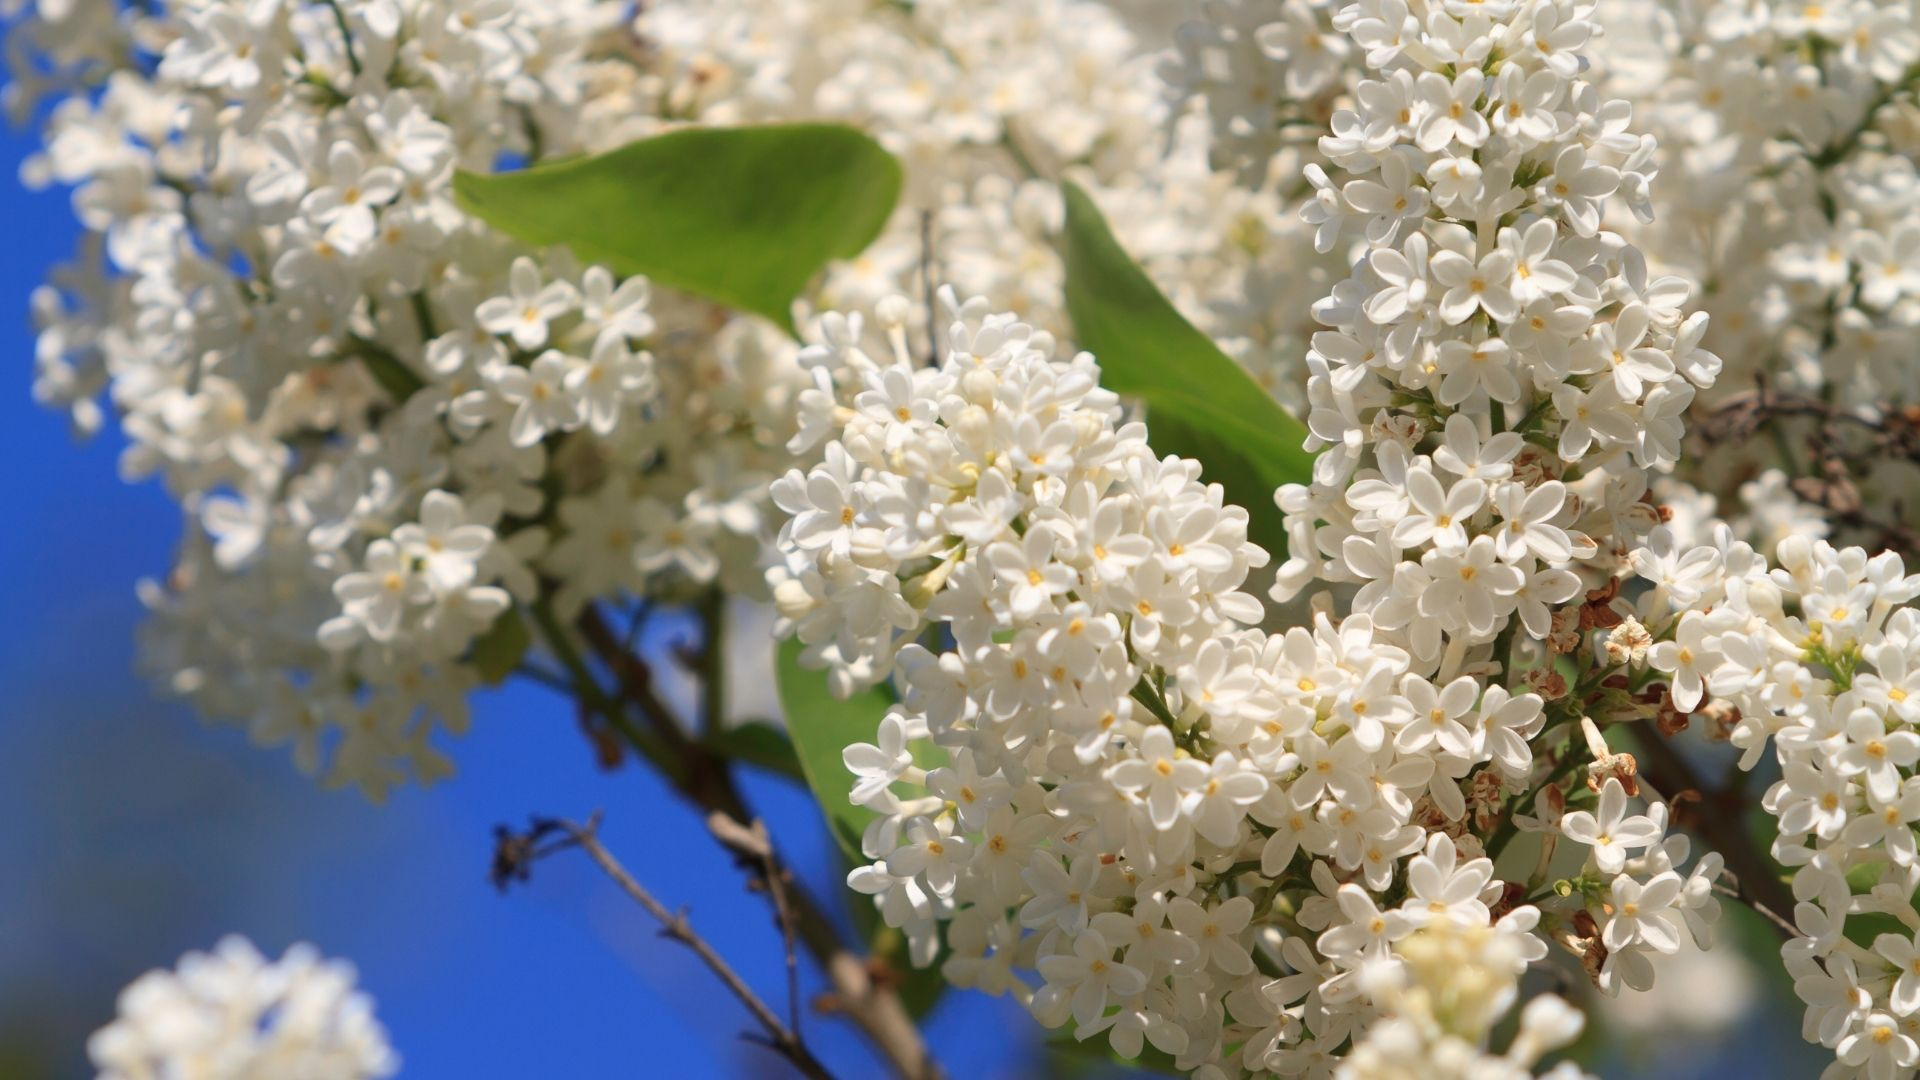 Common Lilac - Clusters of beautiful small white flowers with yellow centers.